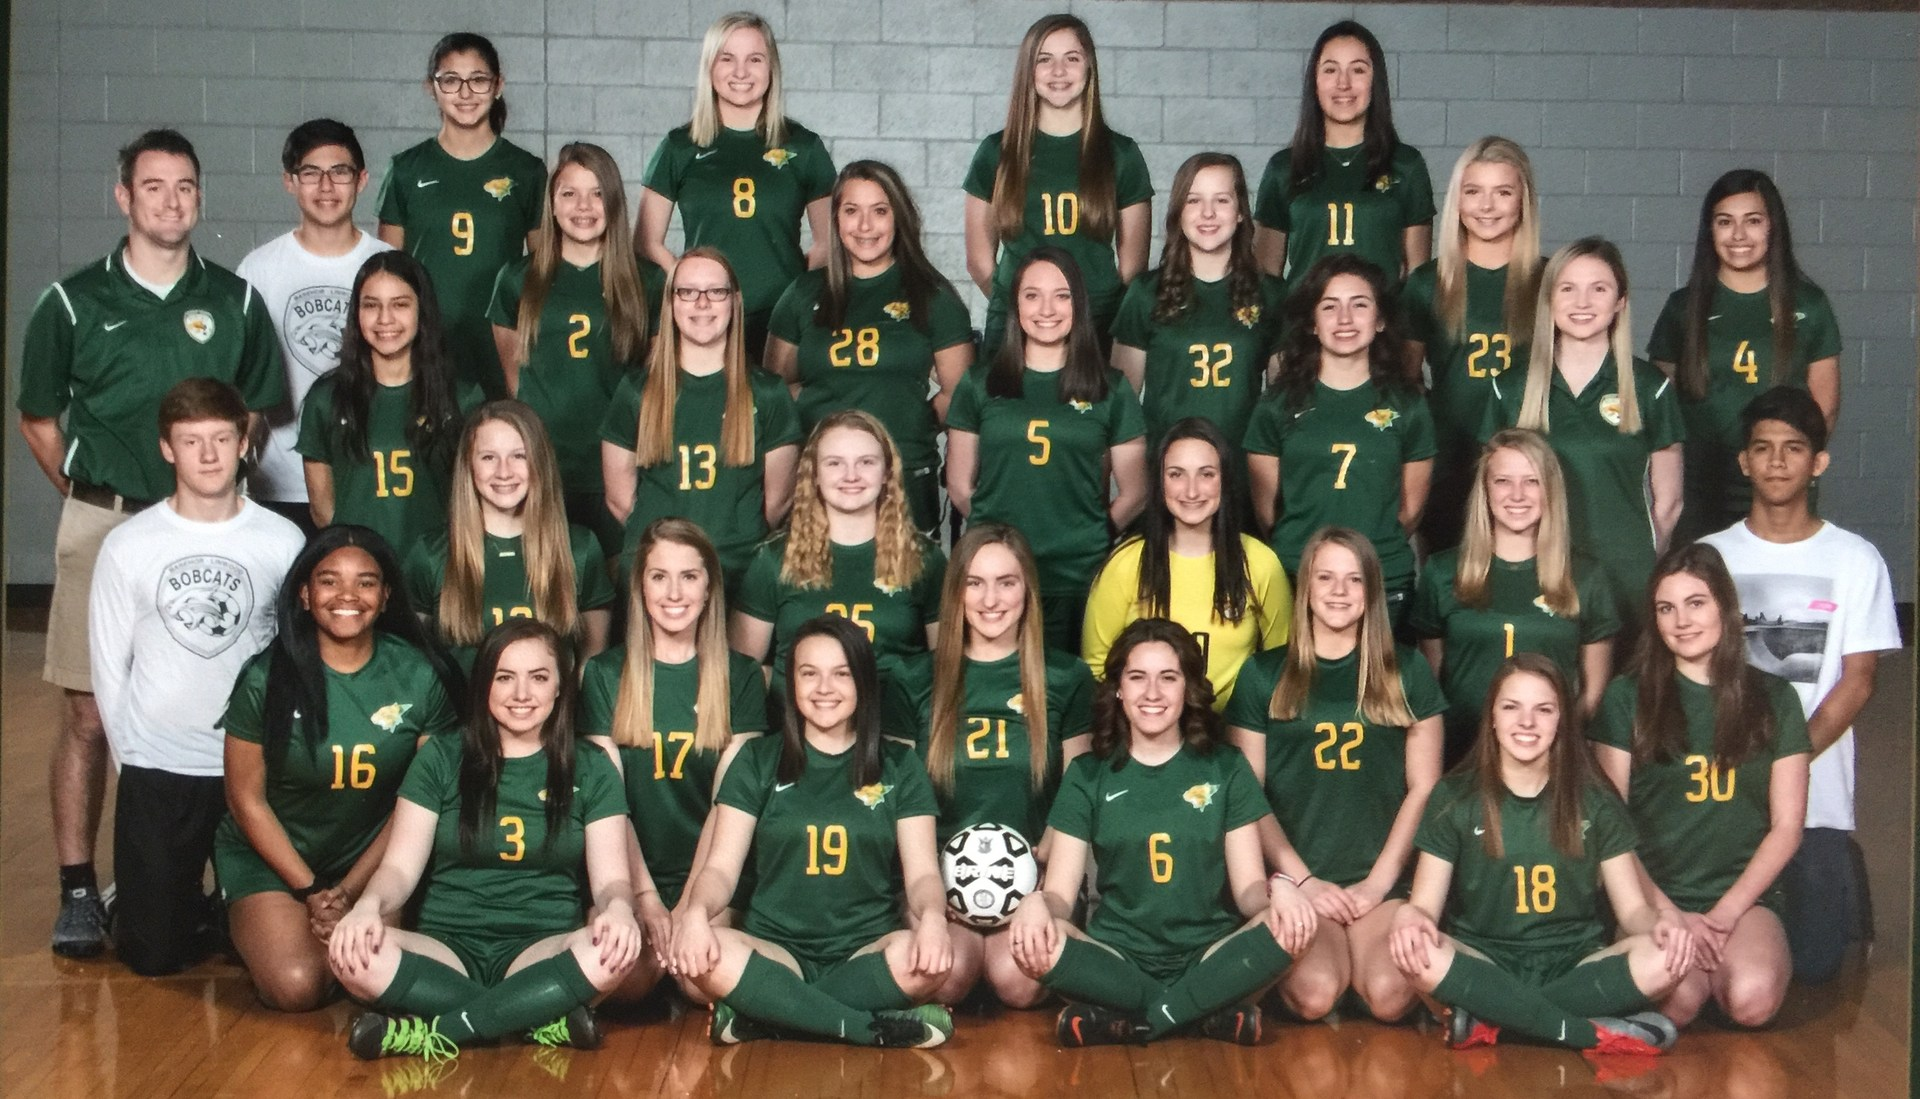 2018 Girls Team Photo